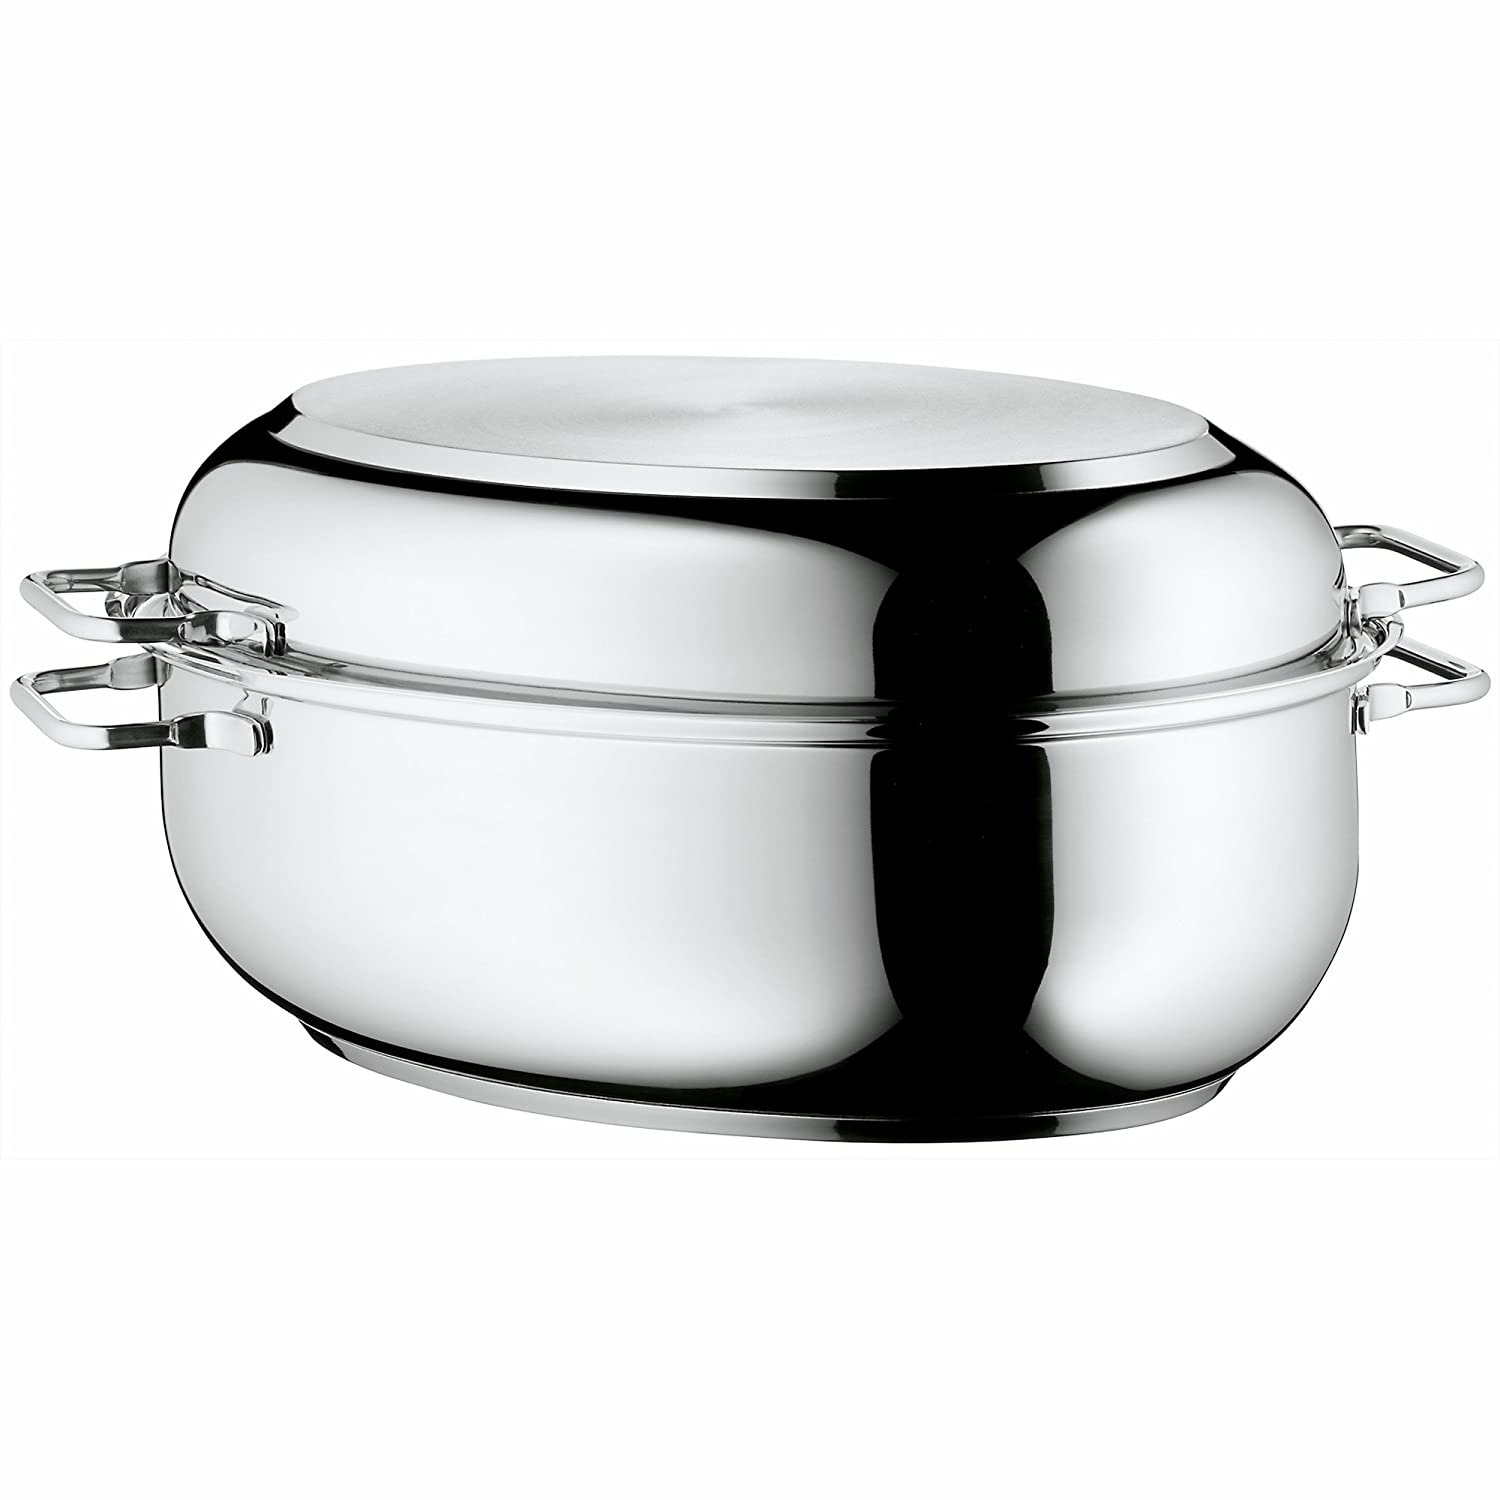 WMF Stainless Steel Deep Oval Roasting Pan, 16-1/4-Inch 8400001731